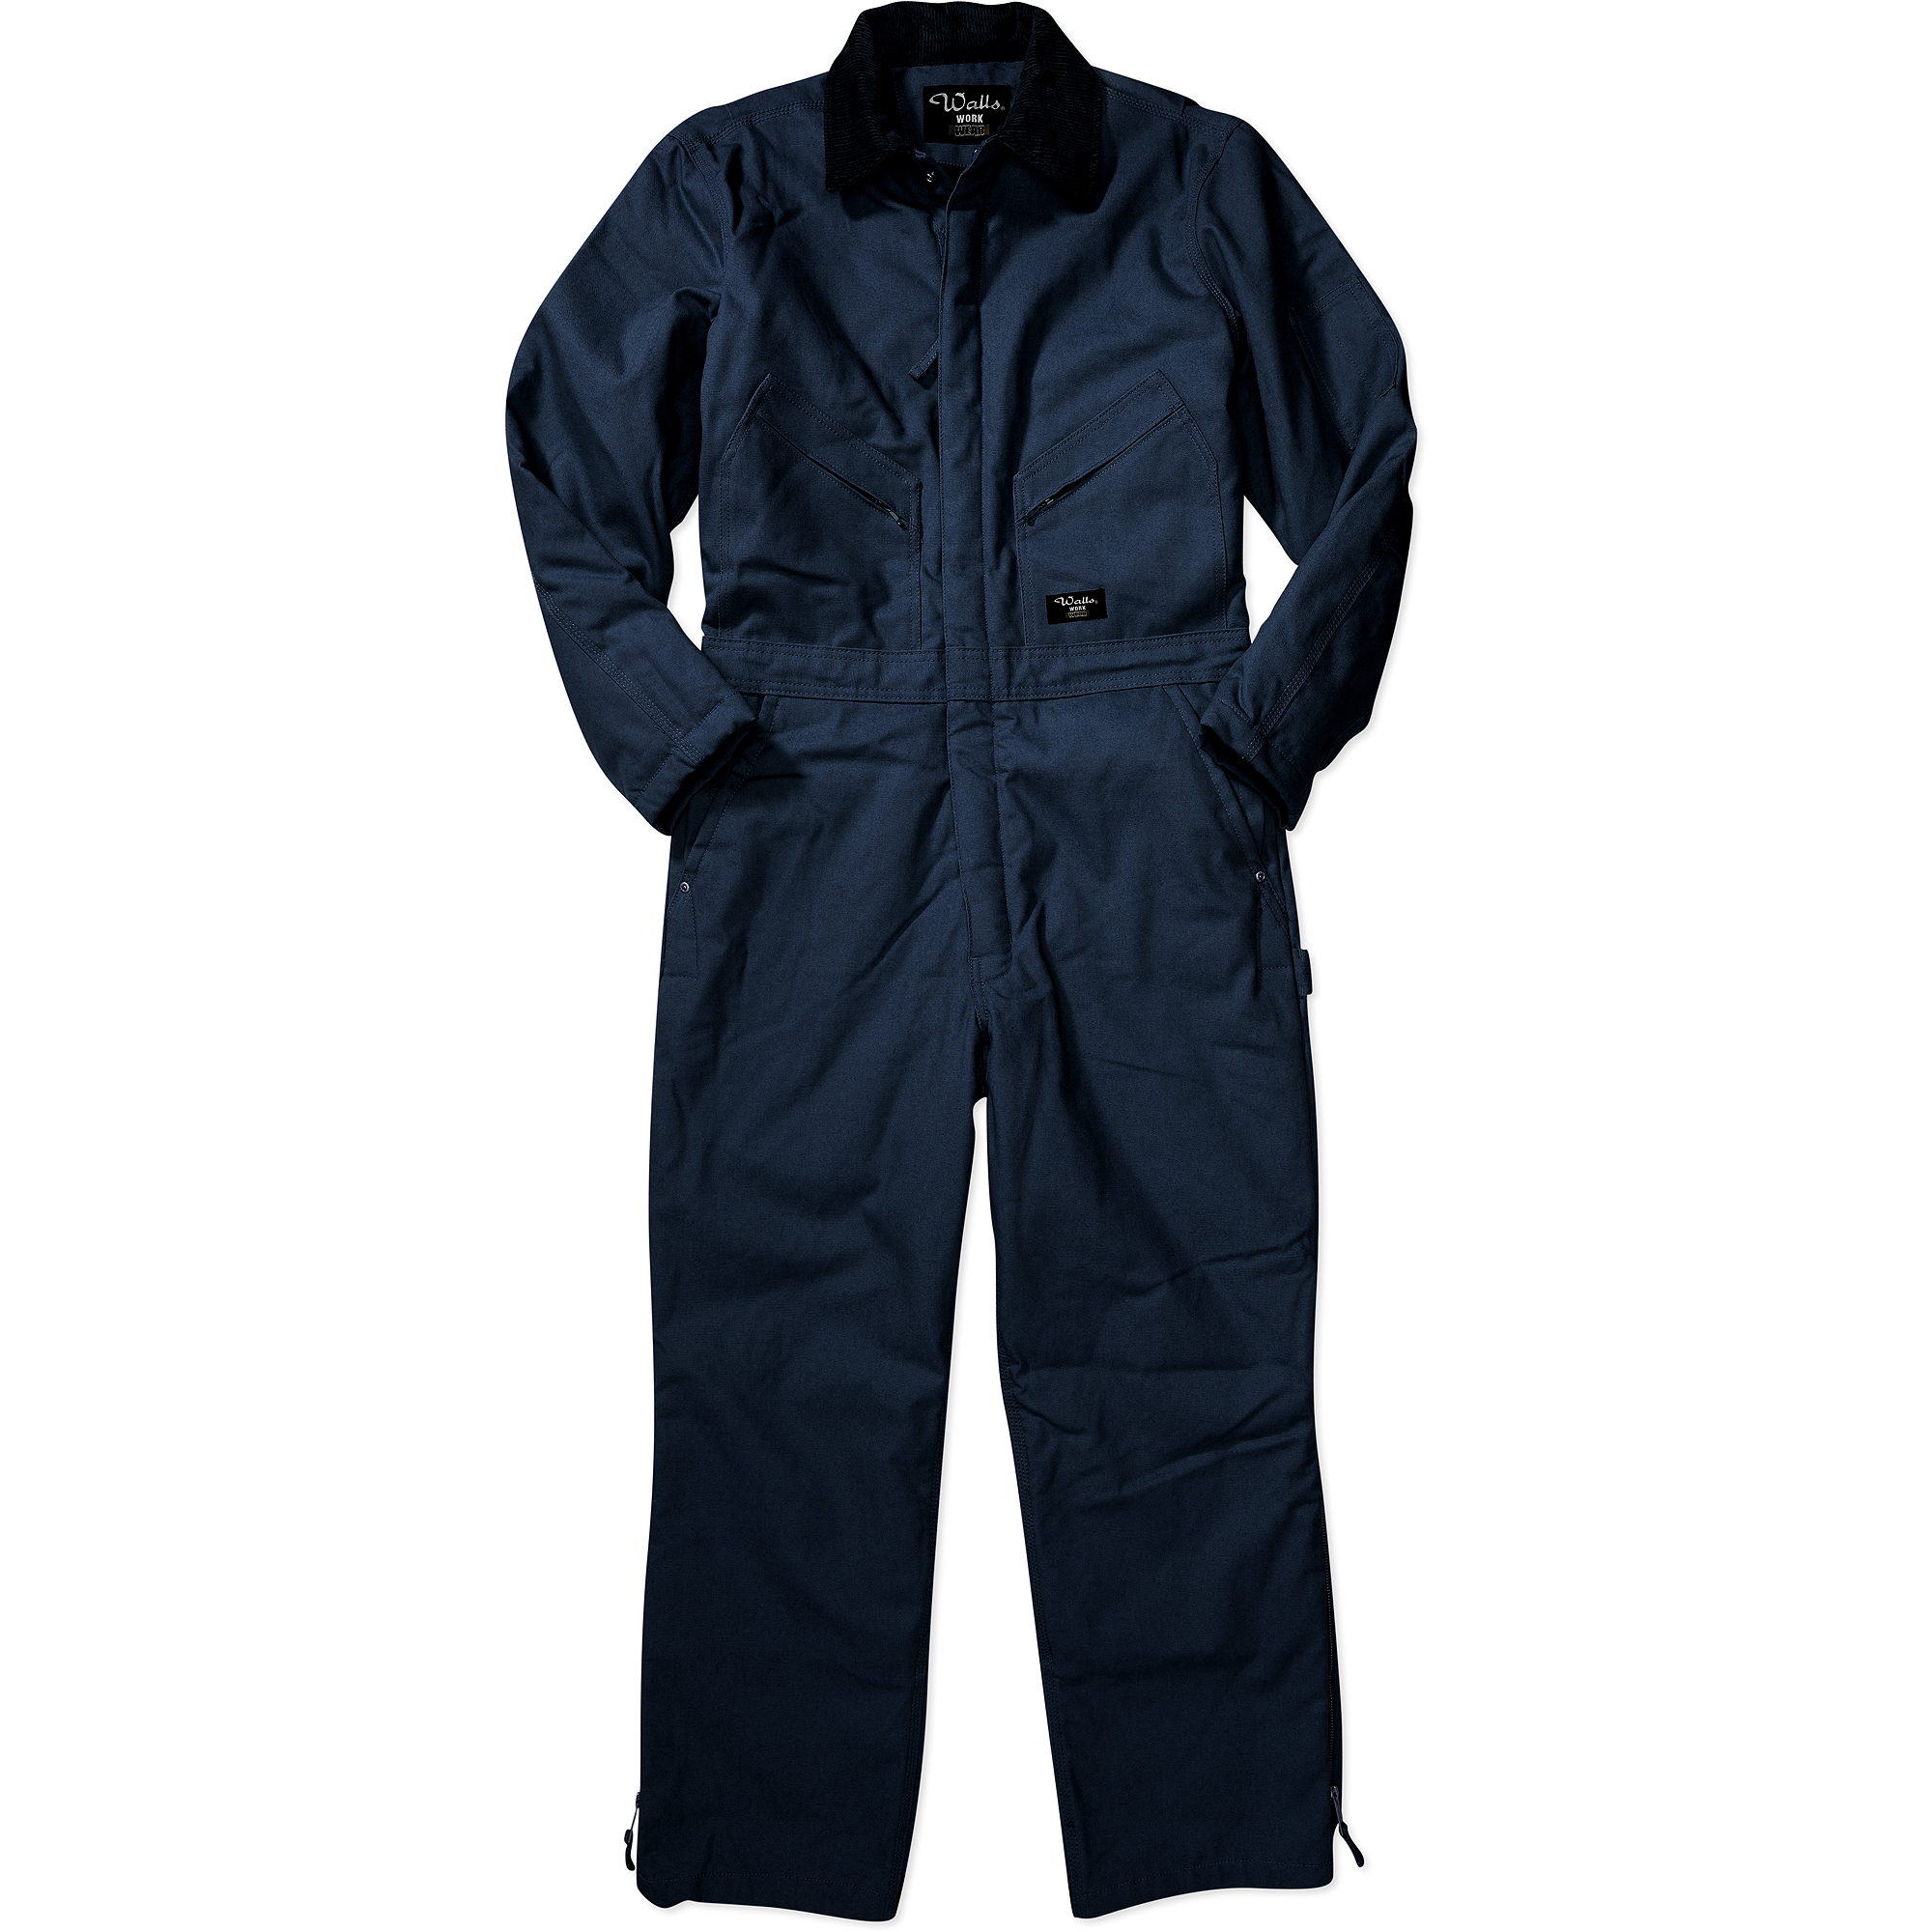 Walls - Big Men's Twill Insulated Coverall, Size 2XL